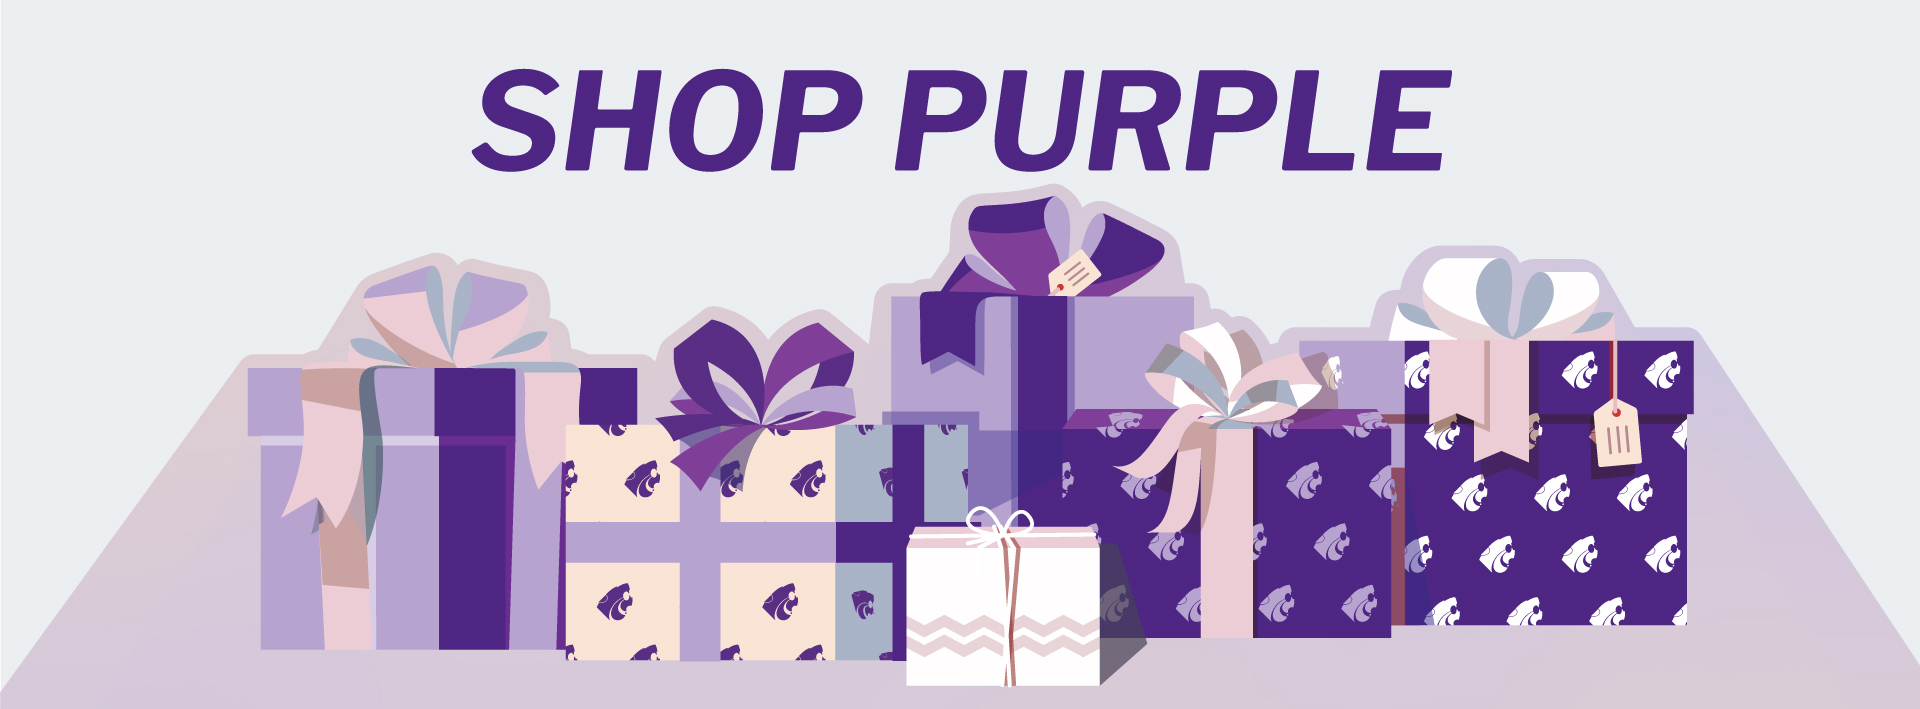 Shop purple for the holidays